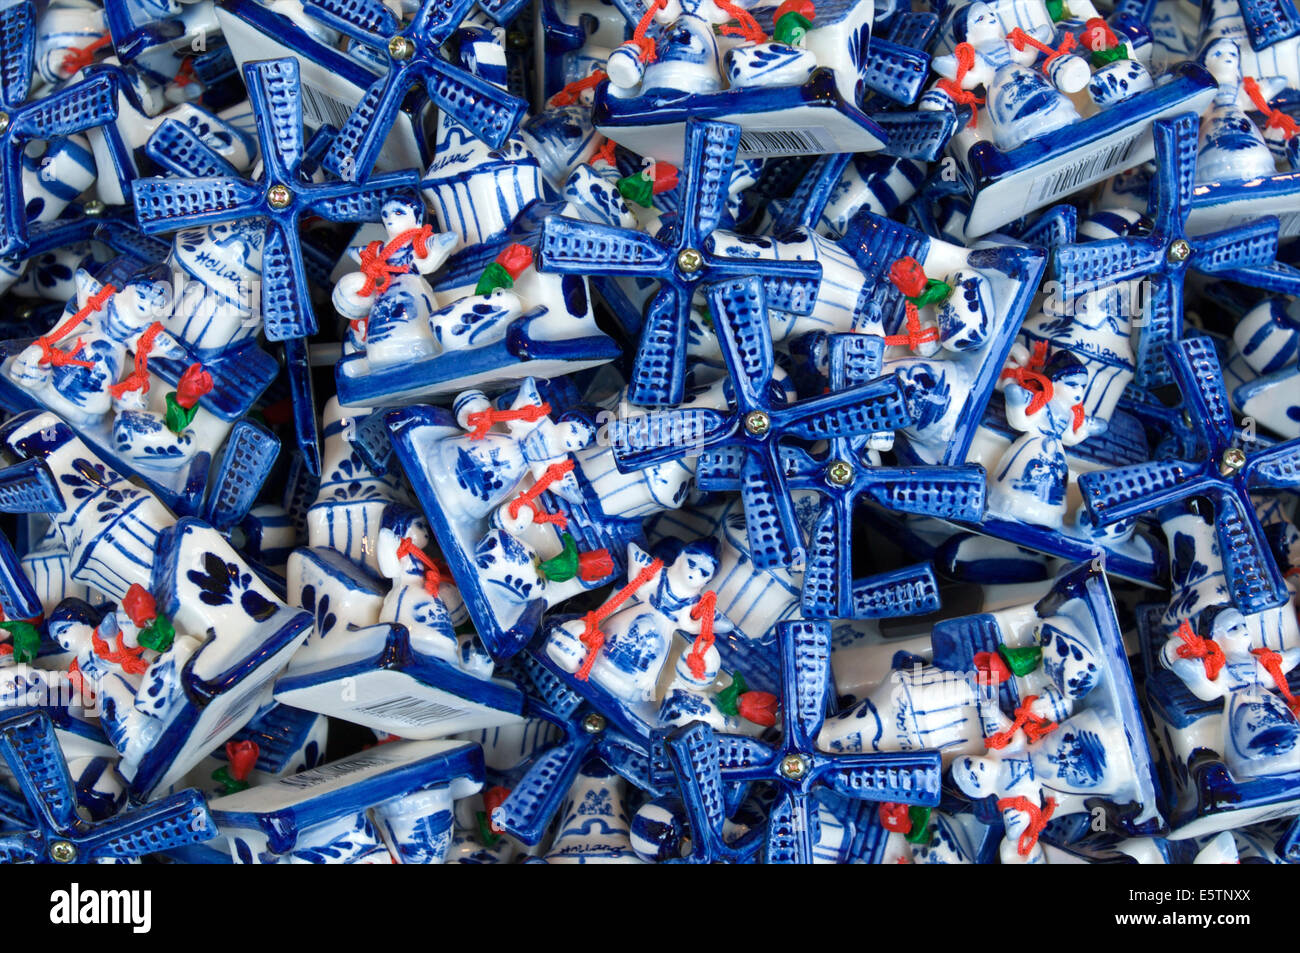 A basket with Delft Blue pottery windmills as souvenirs in a shop in Volendam, The Netherlands - Stock Image